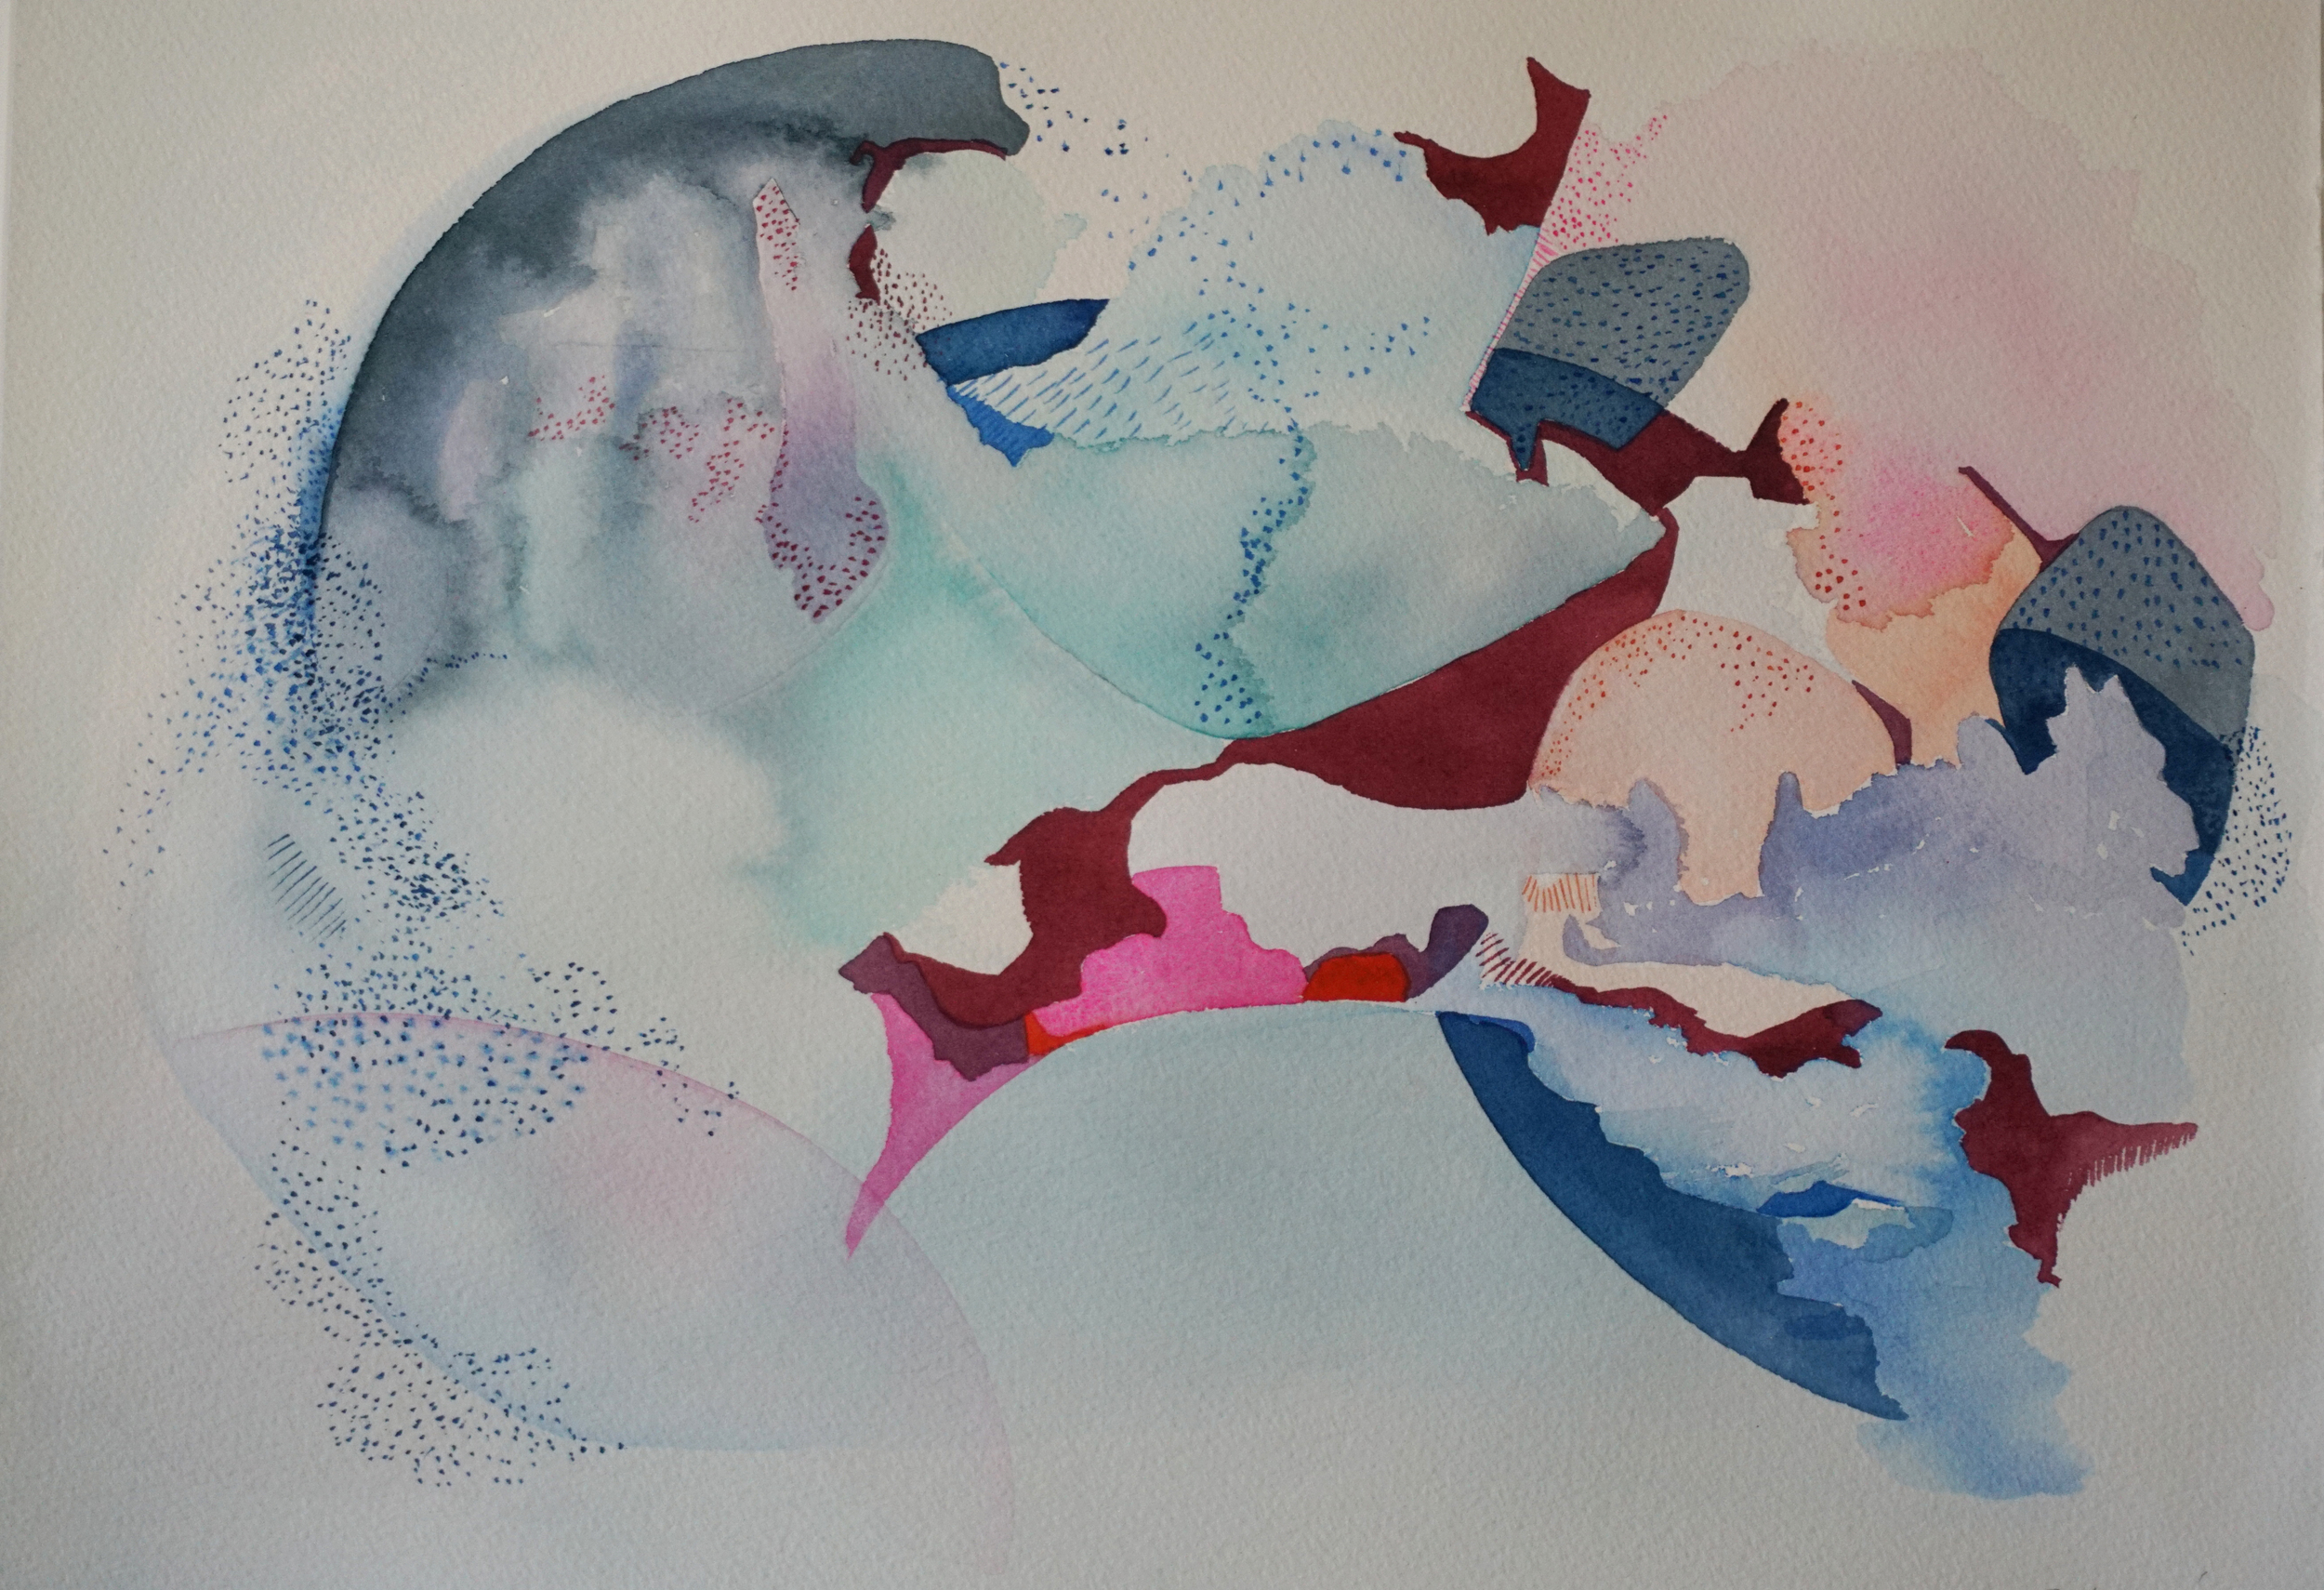 Watercolour painting on  Arches Watercolour Paper 300gsm AUD $495 Unframed   AVAILABLE